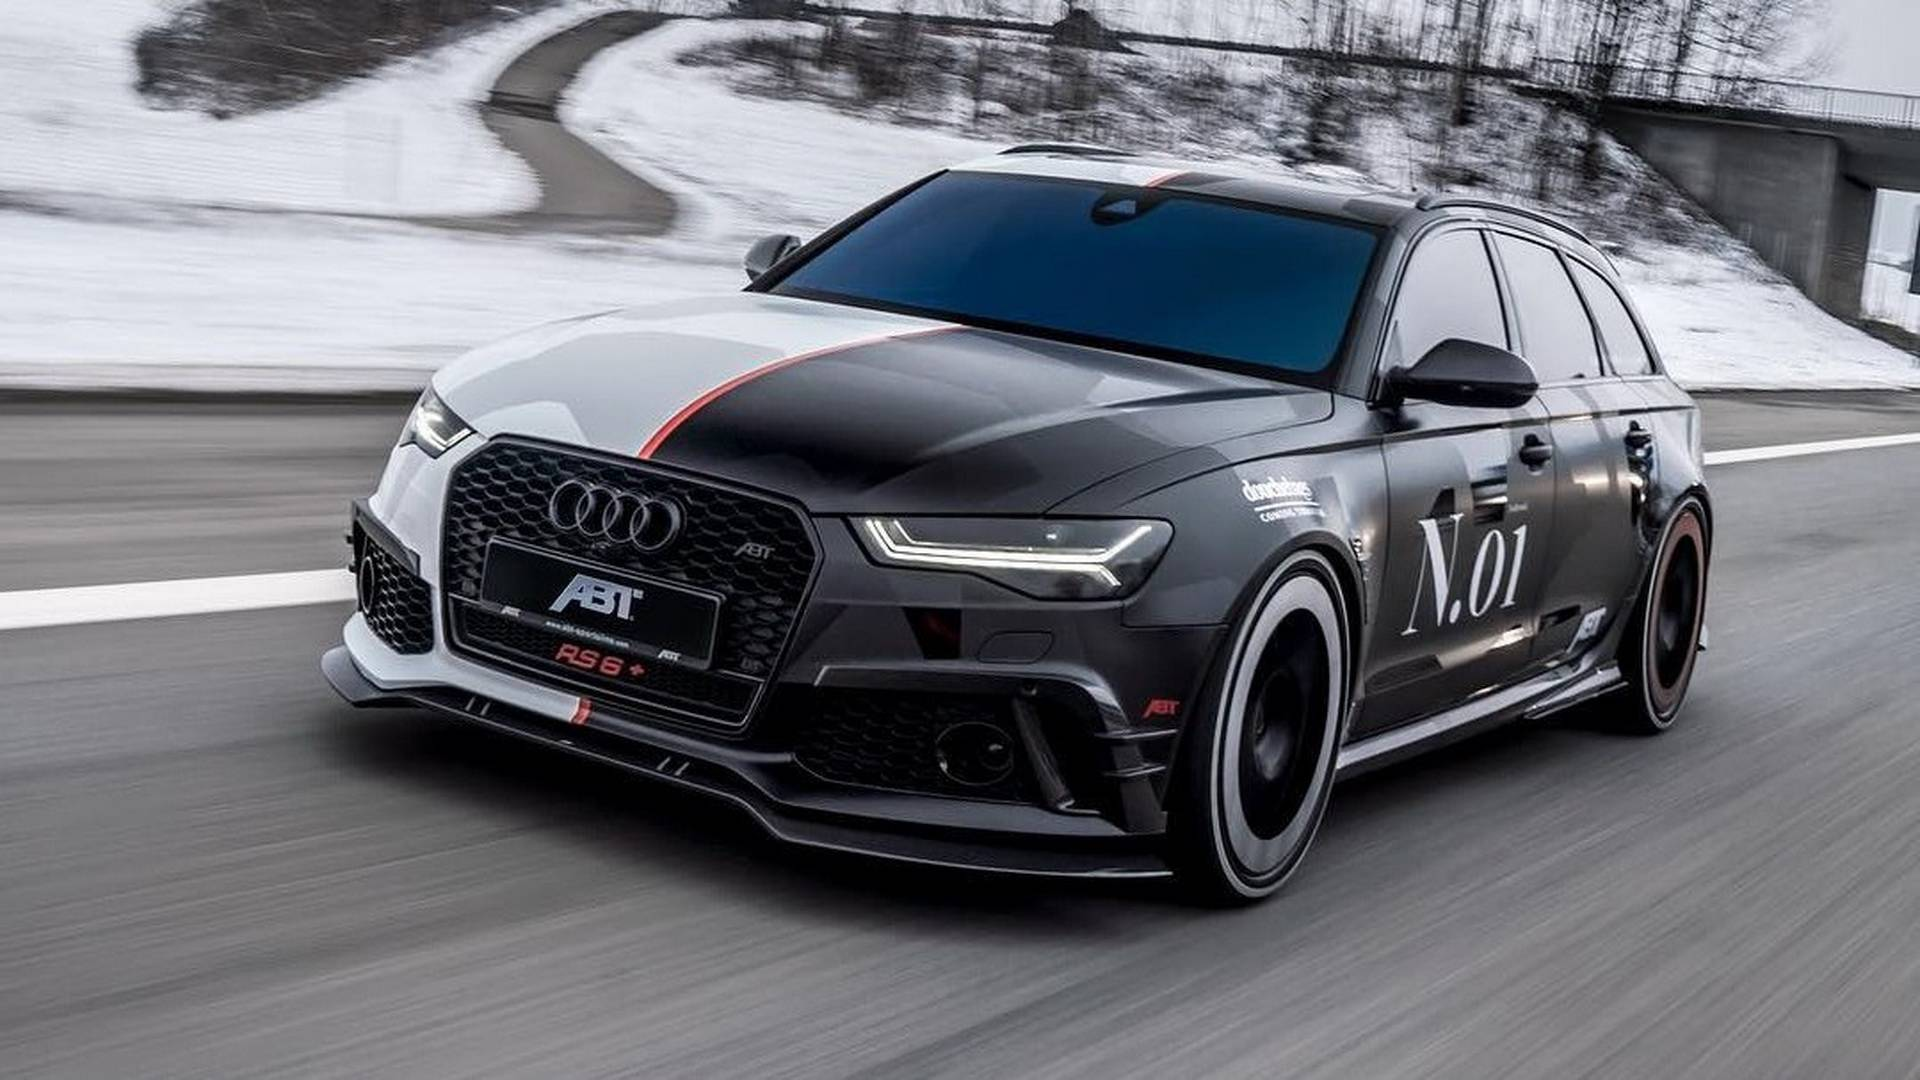 jon olsson showt veel te dikke nieuwe two faced audi rs6 phoenix fhm. Black Bedroom Furniture Sets. Home Design Ideas